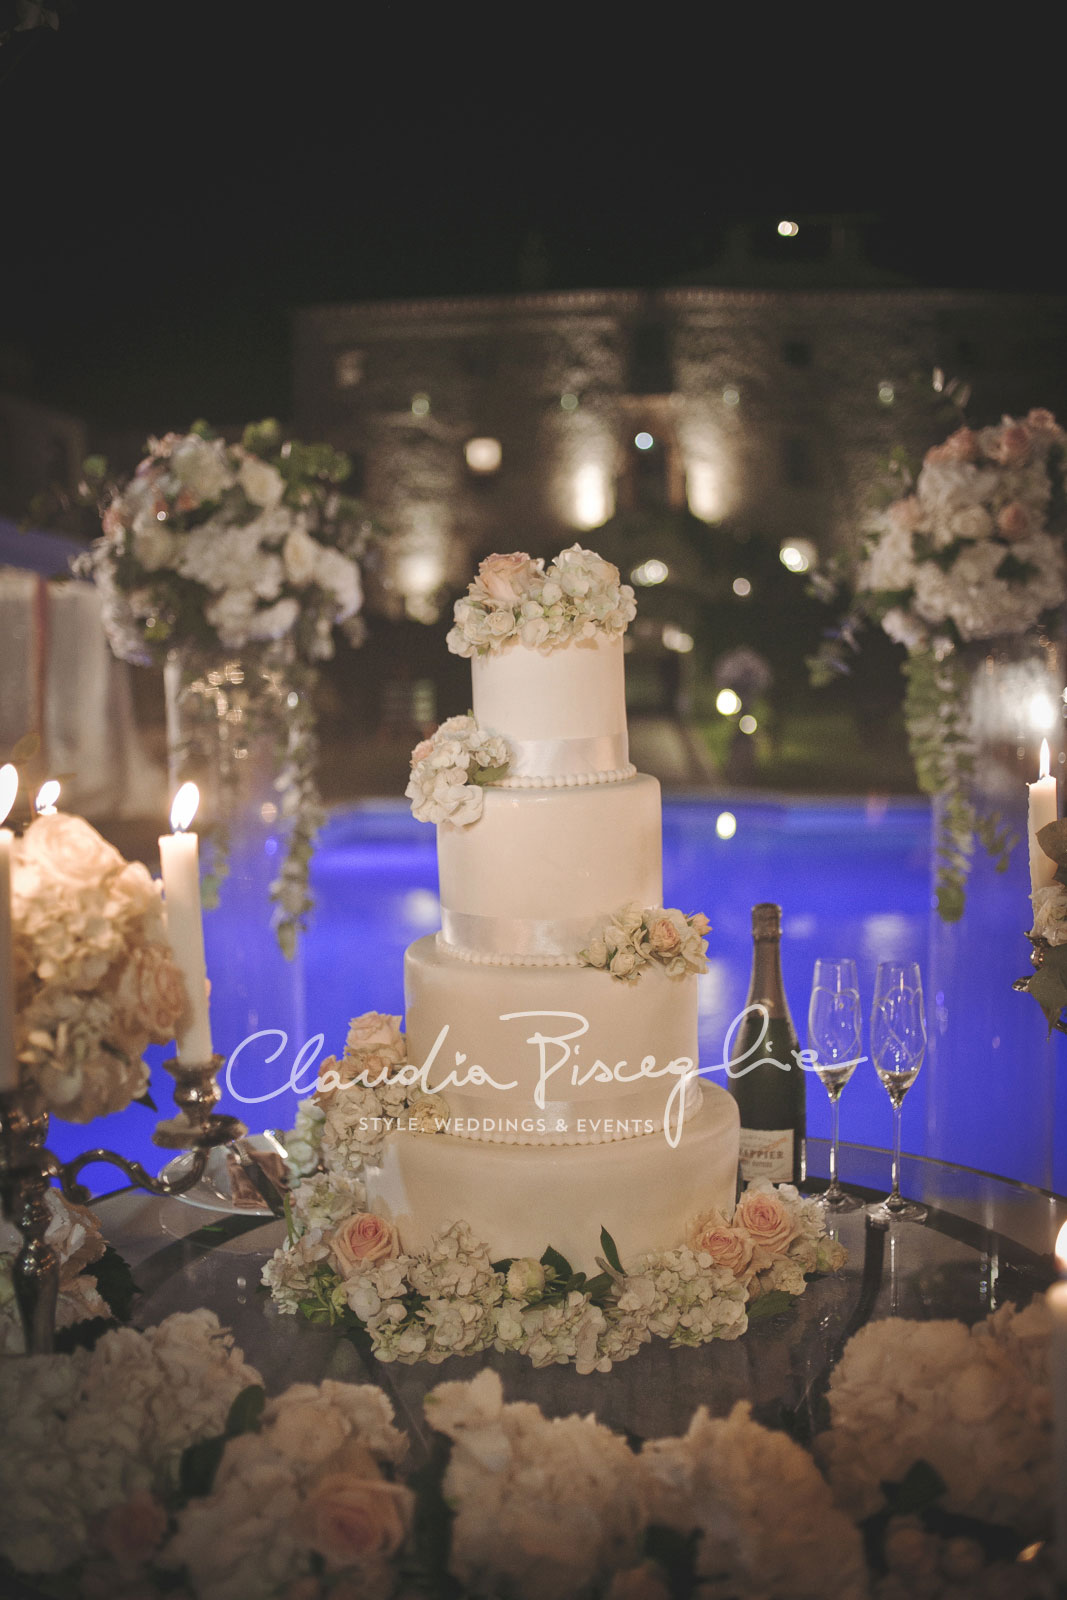 49-Wedding-cake-white-romantic-setting